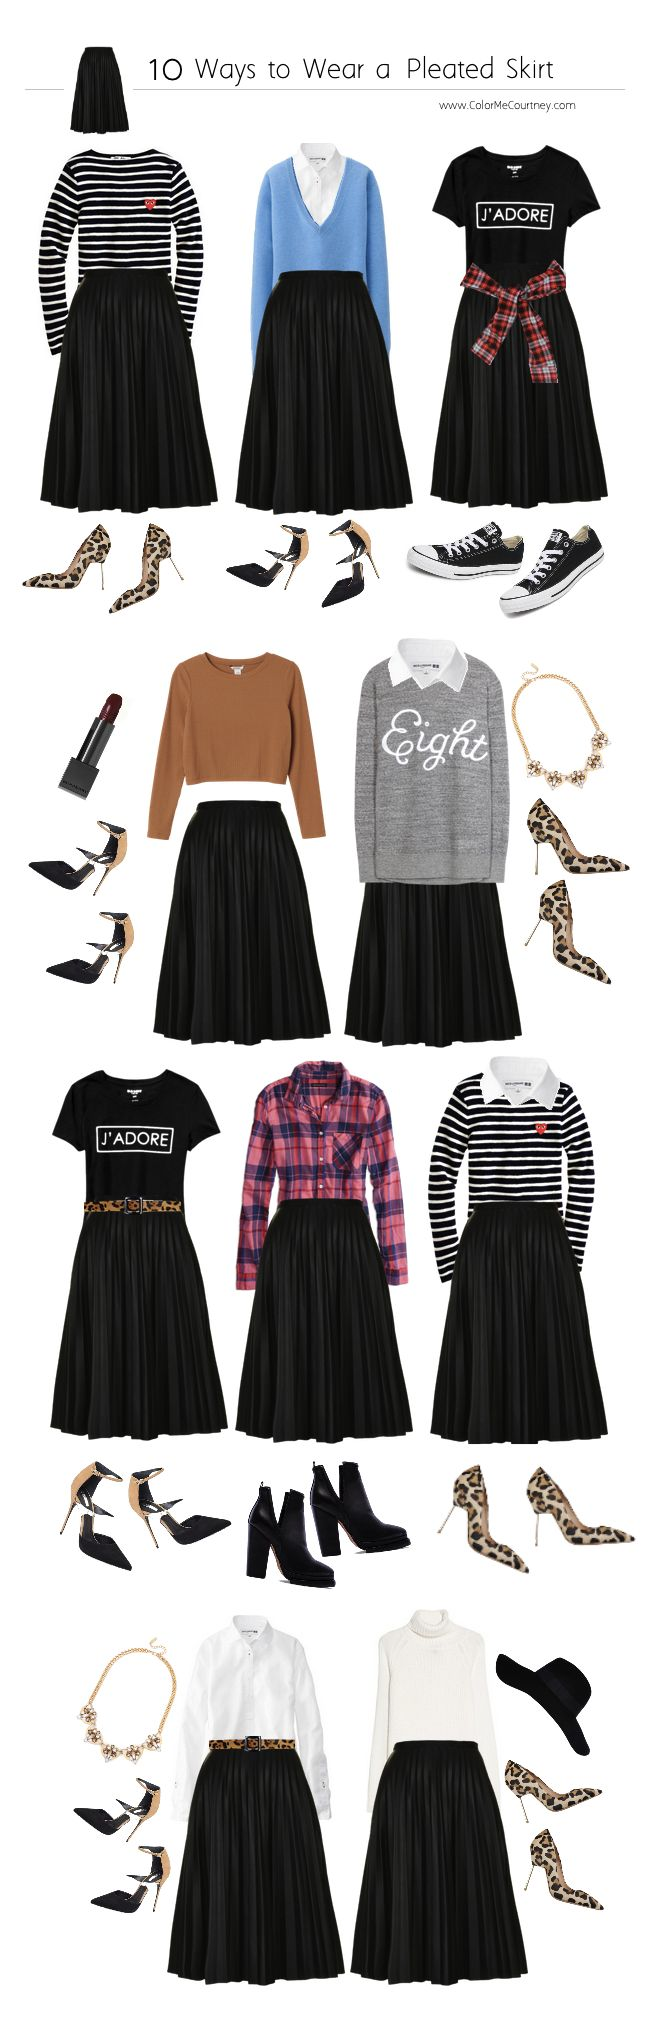 I'm giving you few ways to wear a pleated skirt! They are really trendy now